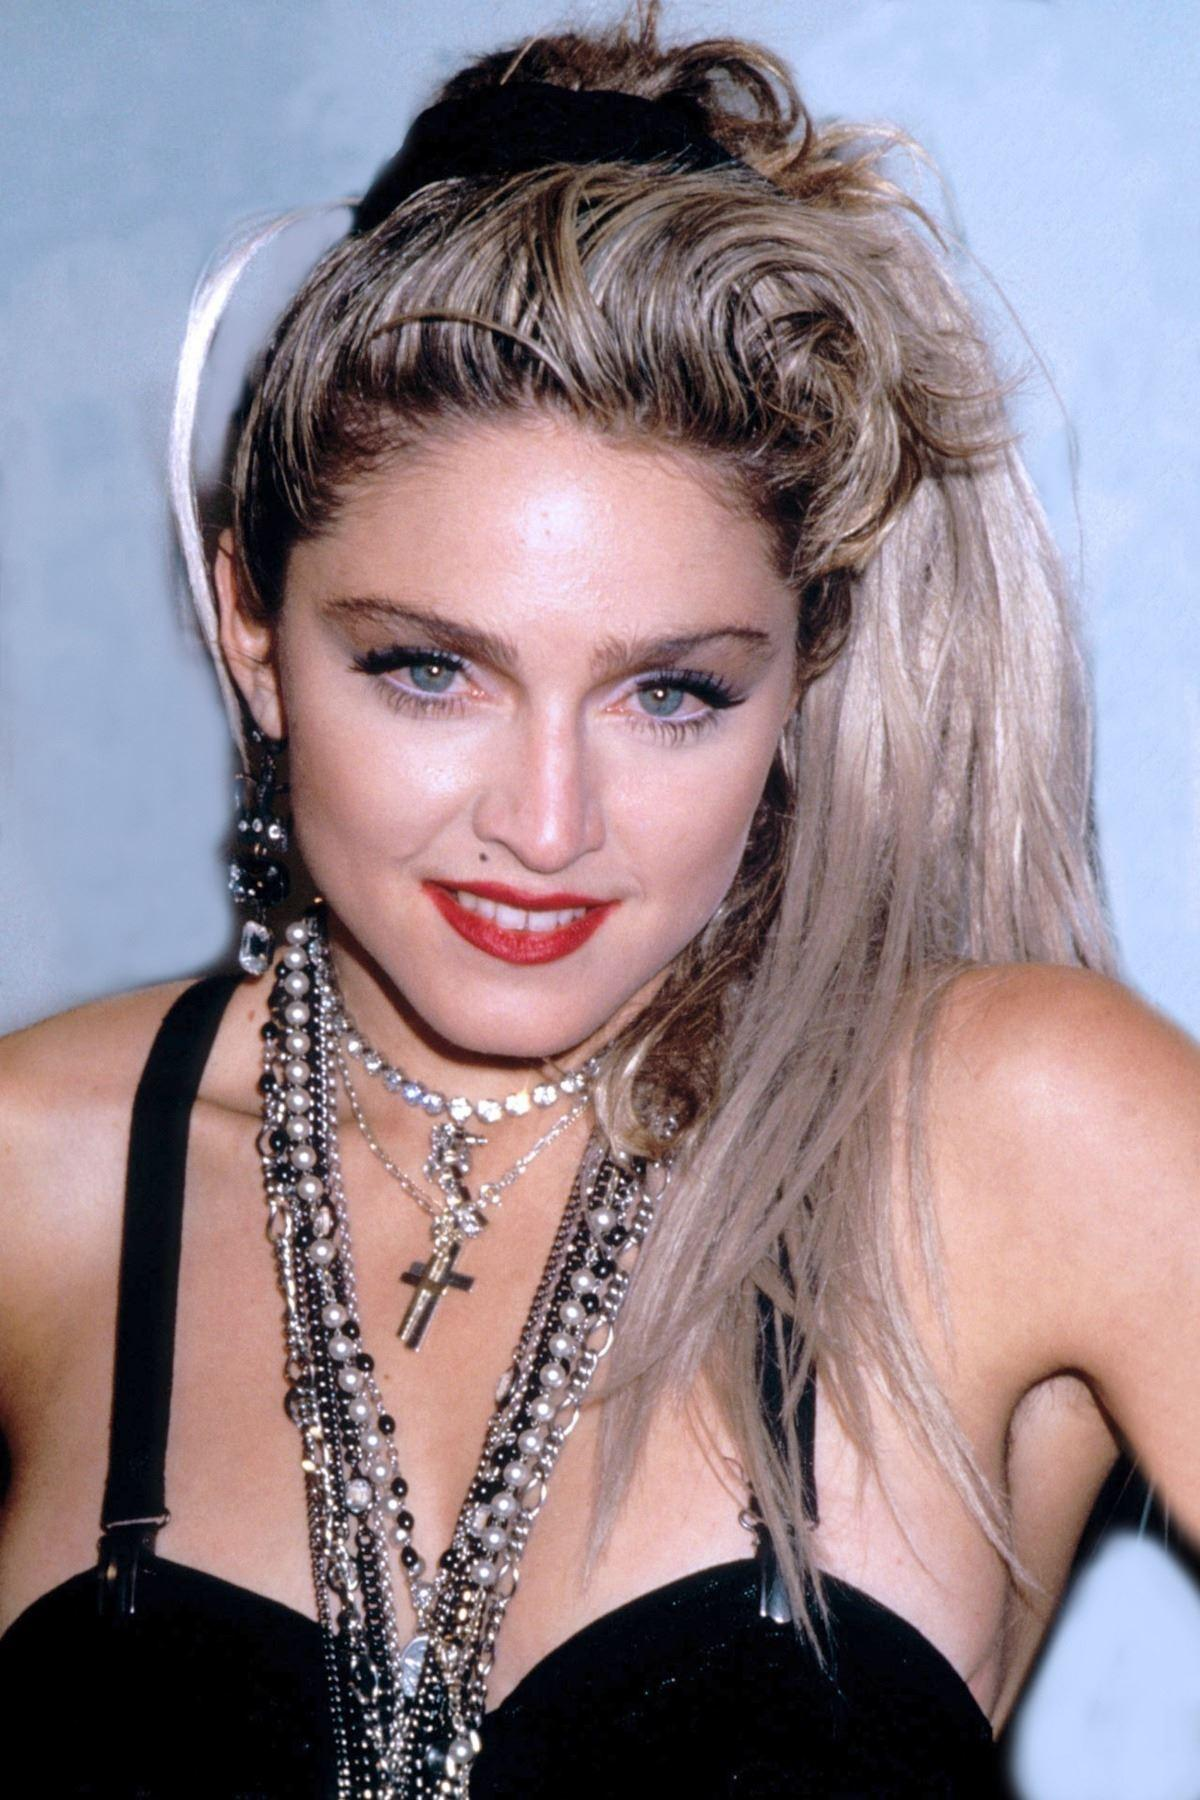 Top Fun Facts About Madonna You Probably Didn't Know